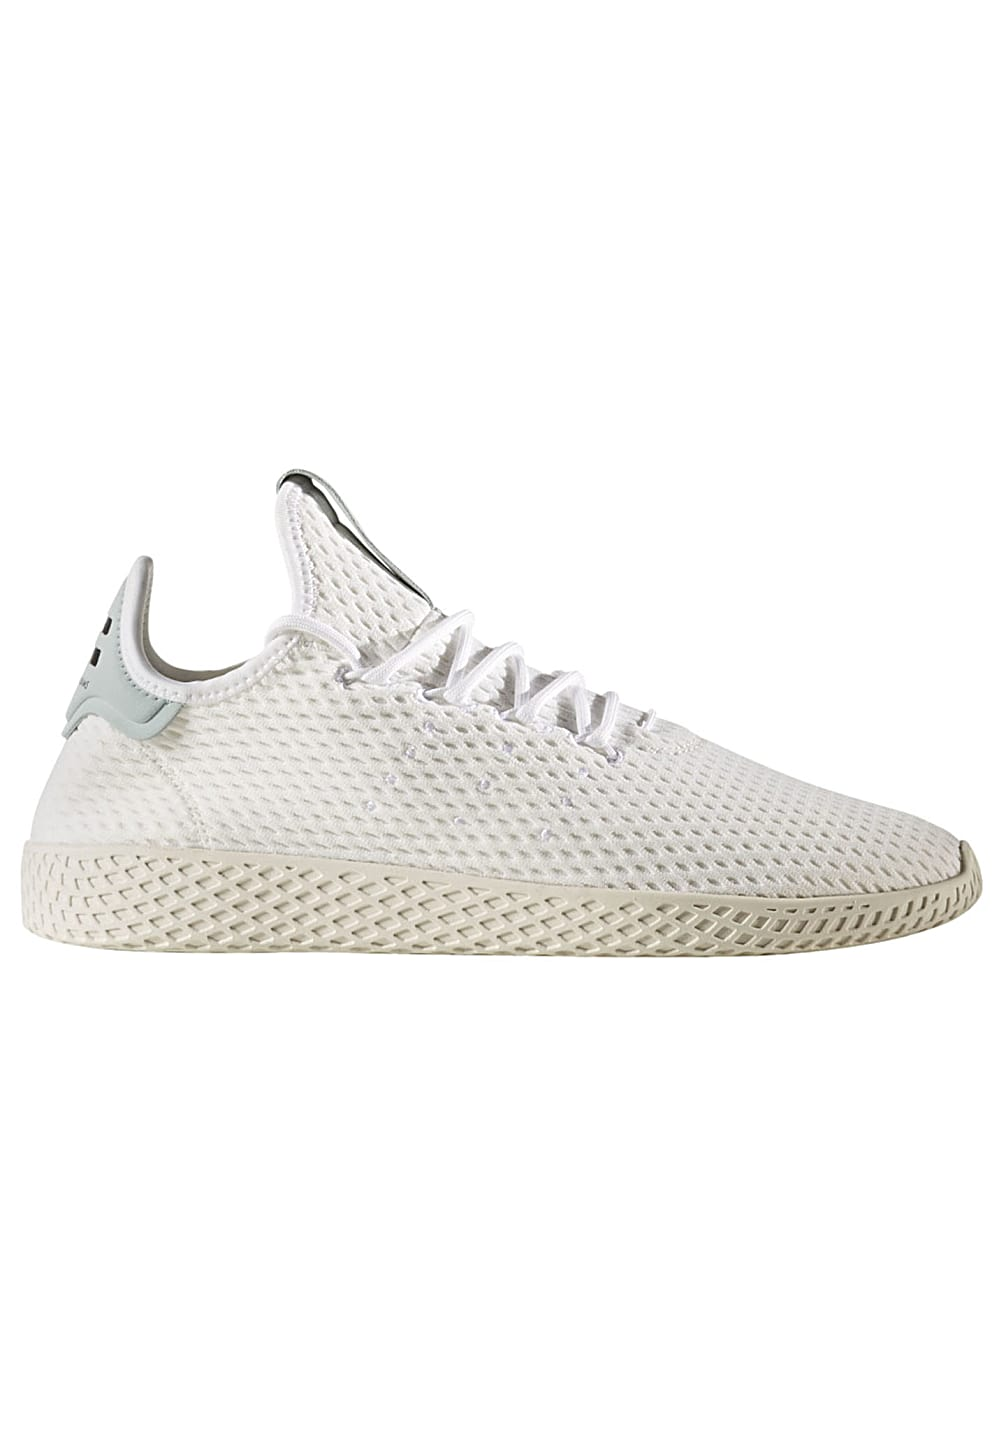 Pharrell Williams Tennis Hu Shoes Outlet